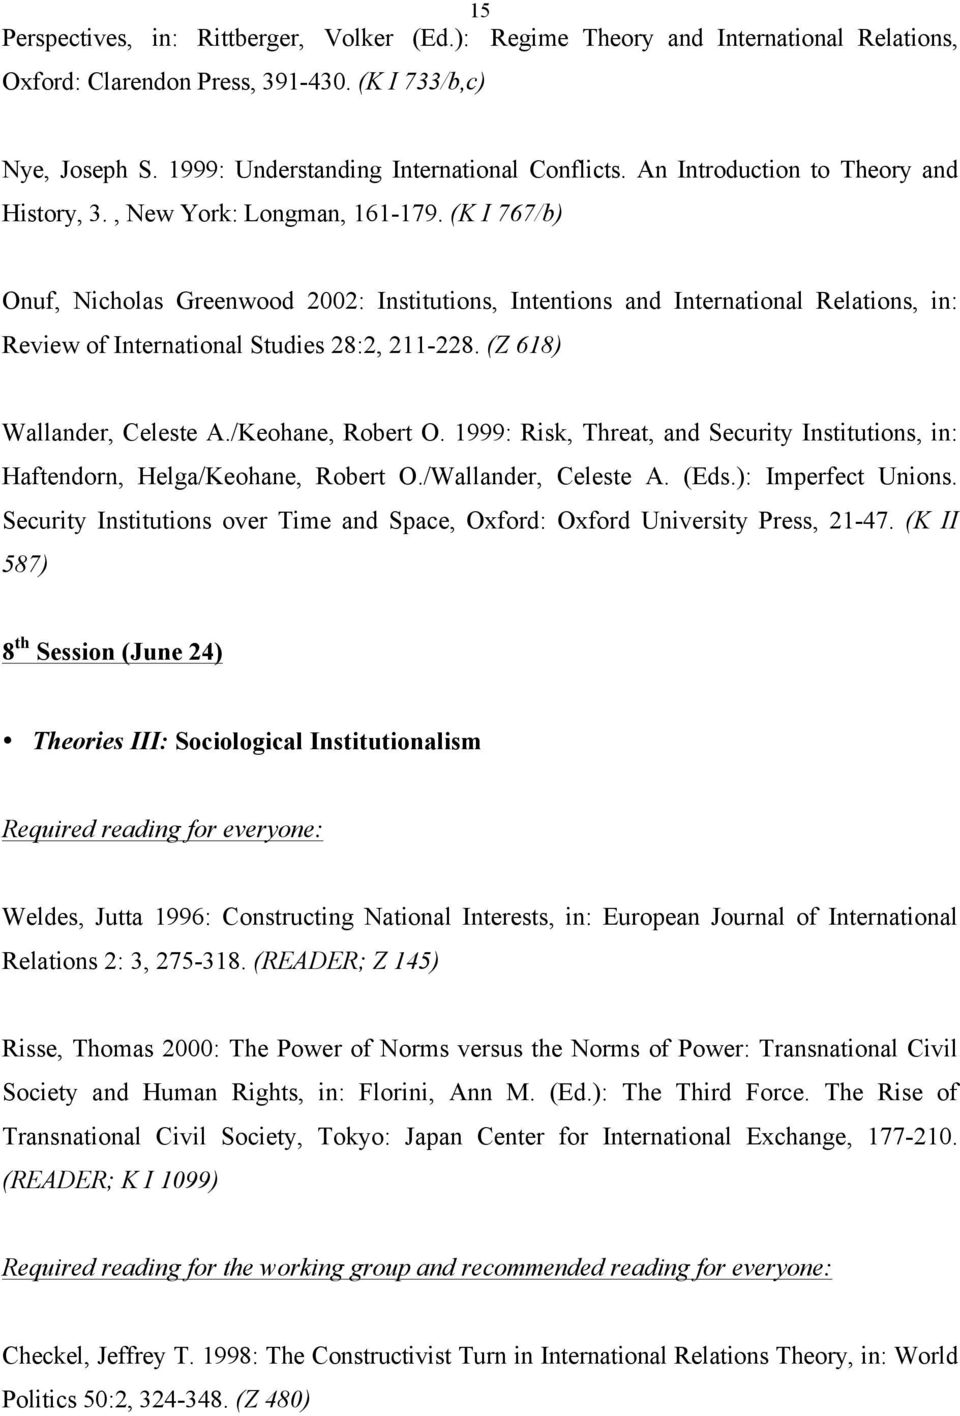 (K I 767/b) Onuf, Nicholas Greenwood 2002: Institutions, Intentions and International Relations, in: Review of International Studies 28:2, 211-228. (Z 618) Wallander, Celeste A./Keohane, Robert O.